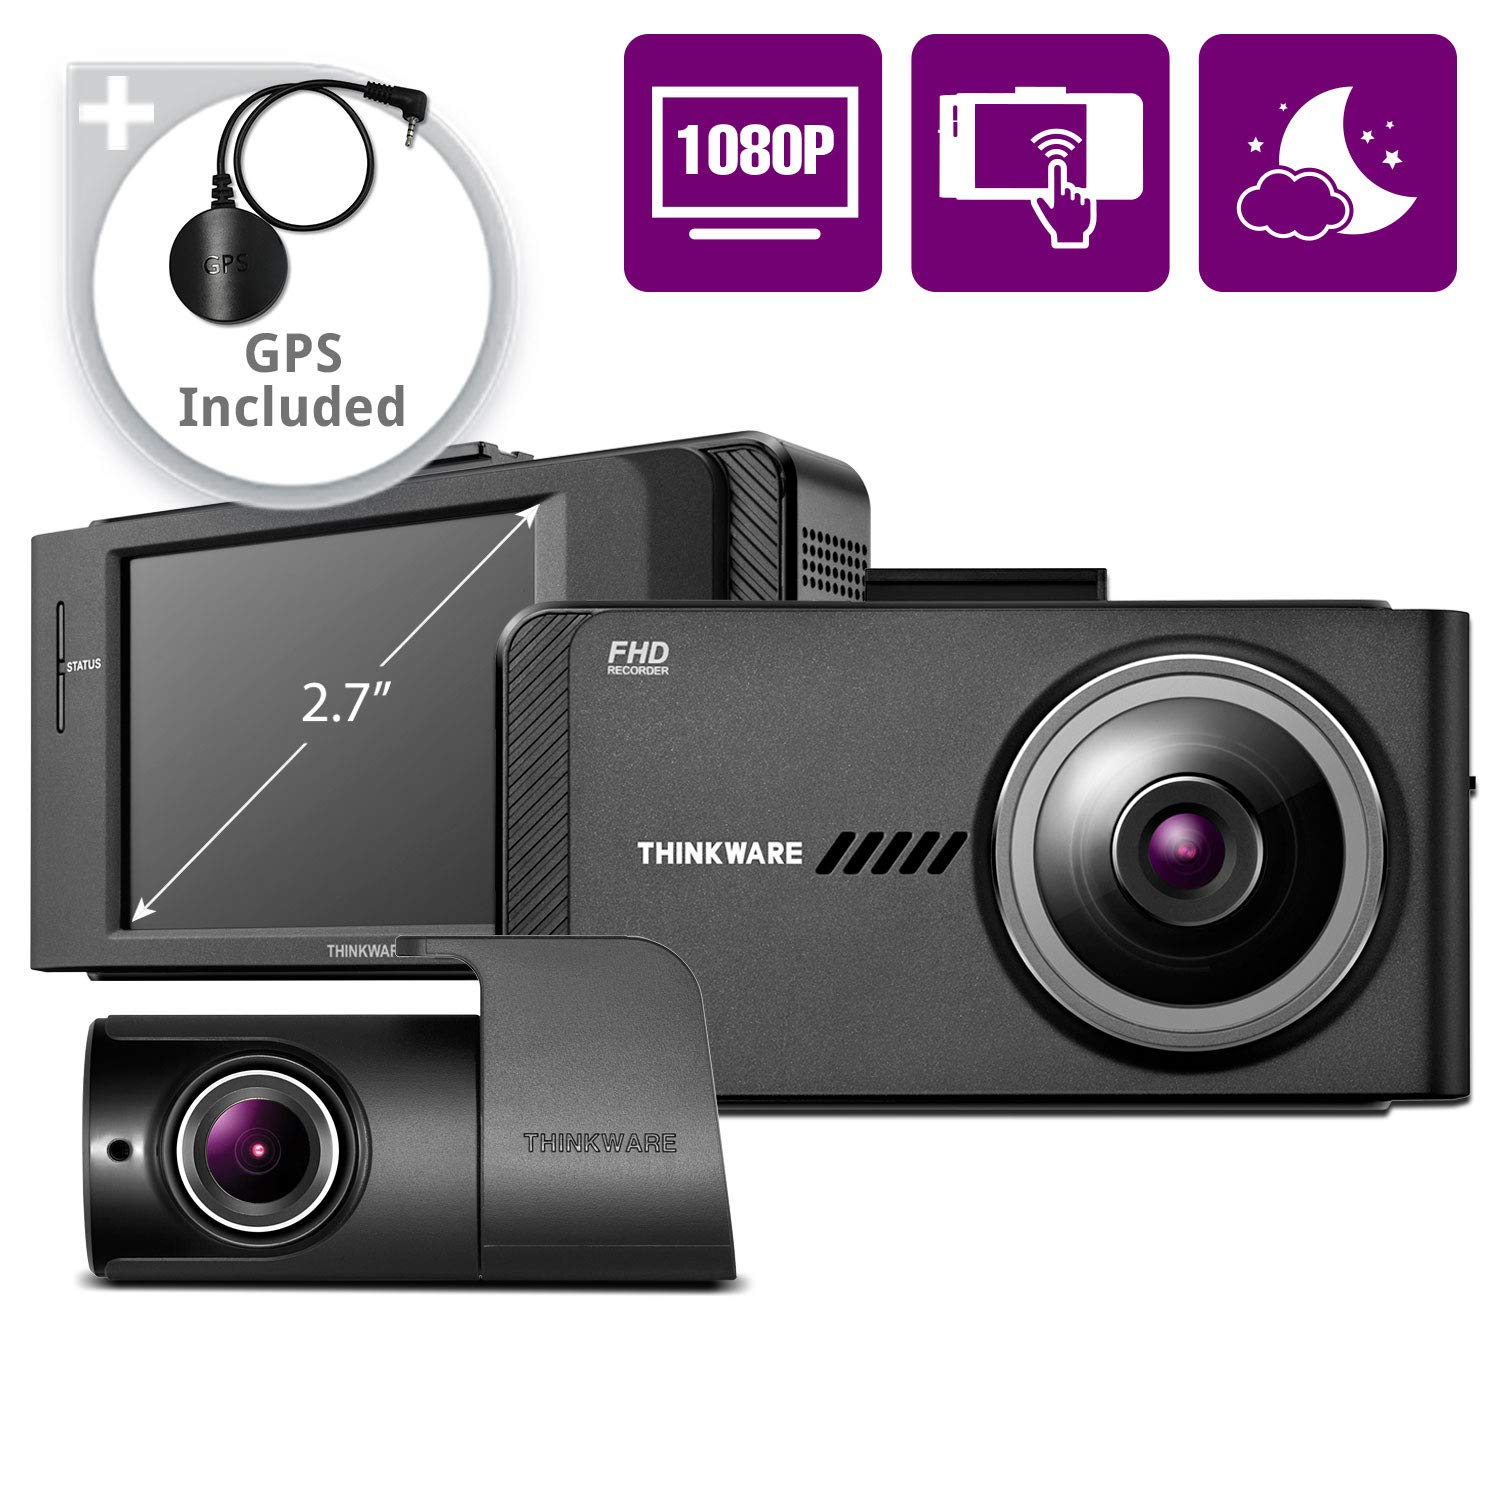 THINKWARE X700 Dual Dash Cam Front and Rear Camera for Cars, 1080P FHD, Dashboard Camera Recorder with G-Sensor, Car Camera w/Sony Sensor, GPS, WiFi, Night Vision, 32GB, Optional Parking Mode